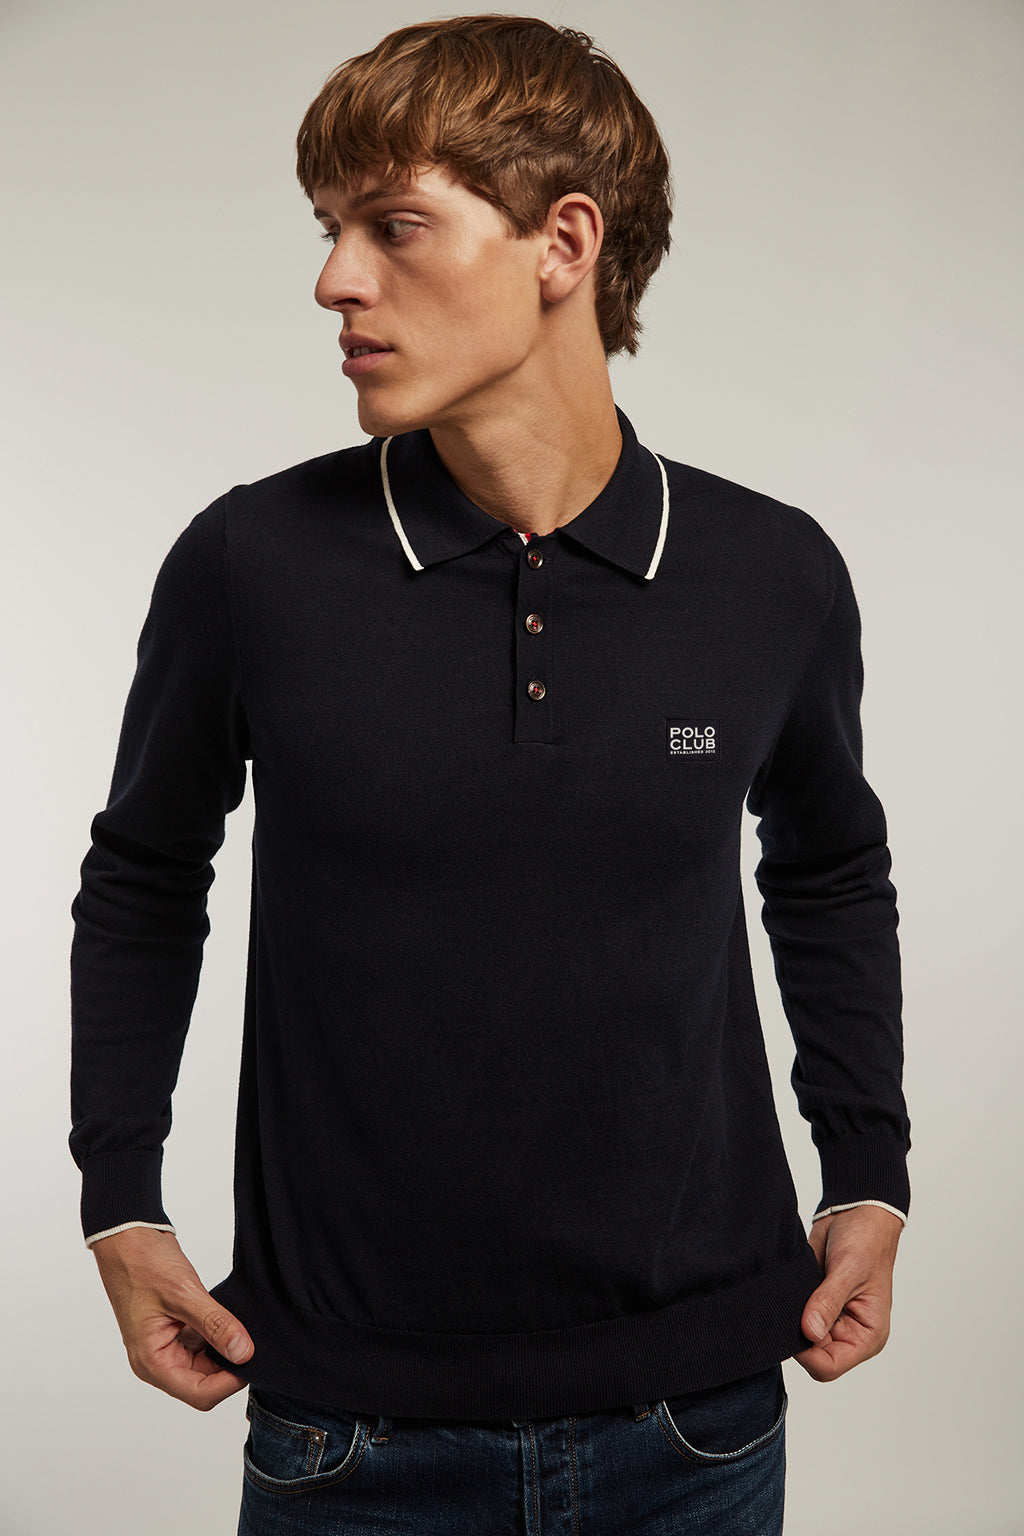 Navy blue polo jumper with detail in contrasting colour